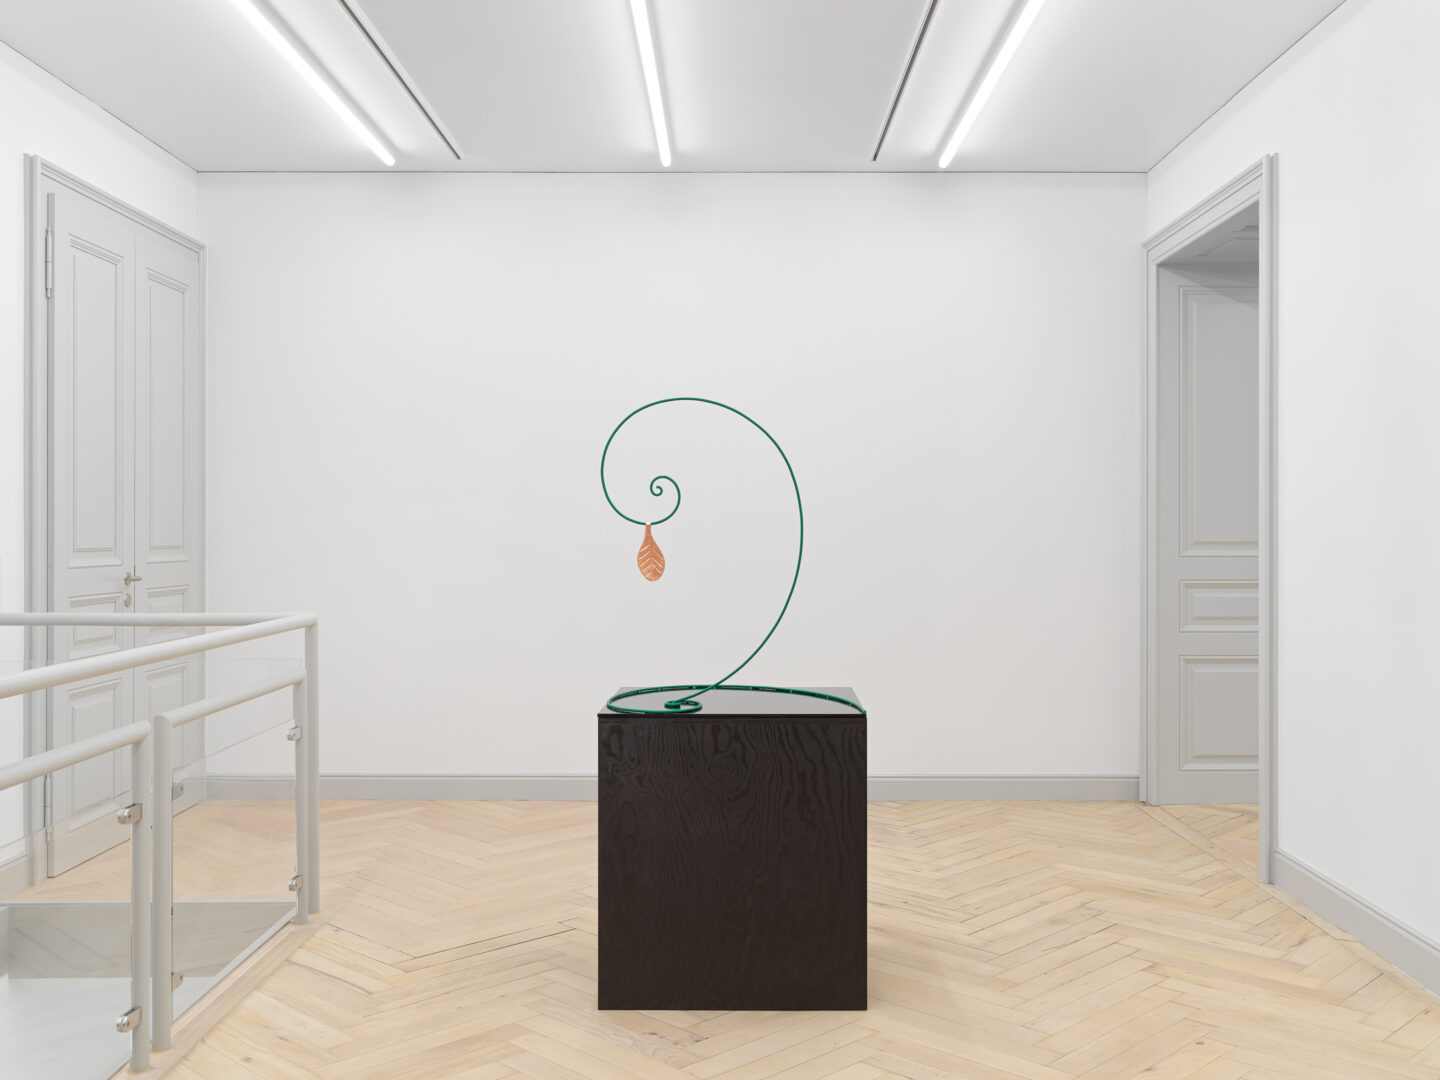 Exhibition View Valentin Carron Soloshow (view on The Last Leaf, 2020) at Galerie Eva Presenhuber, Rämistrasse, Zurich, 2020 / © Valentin Carron / Photo: Stefan Altenburger / Courtesy: the artist and Galeire Eva Presenhuber Zurich / New York